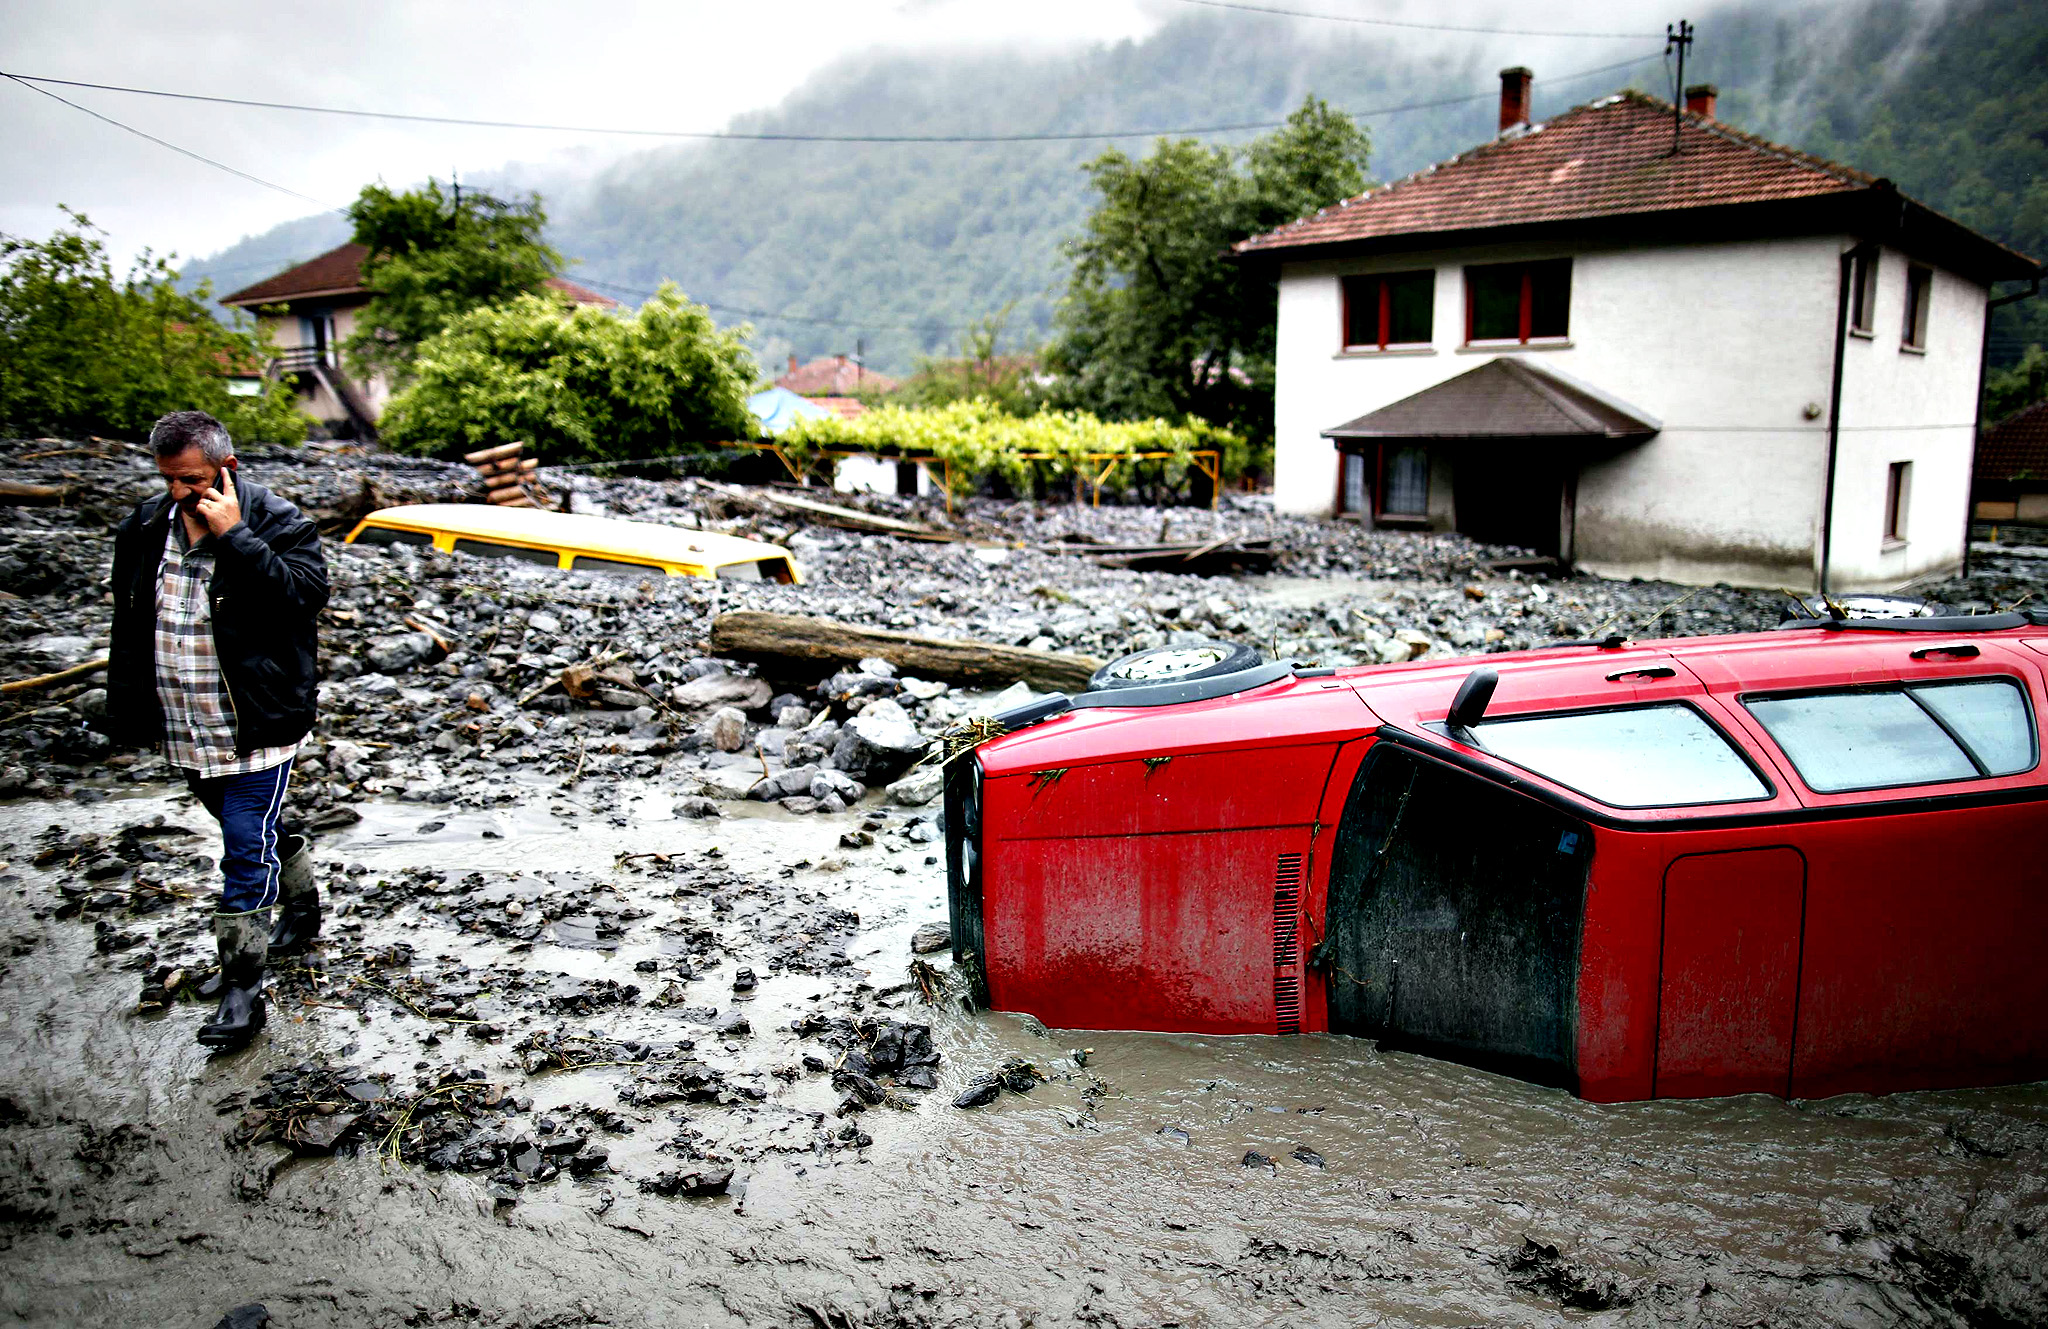 One year after the floods BiH still recovering